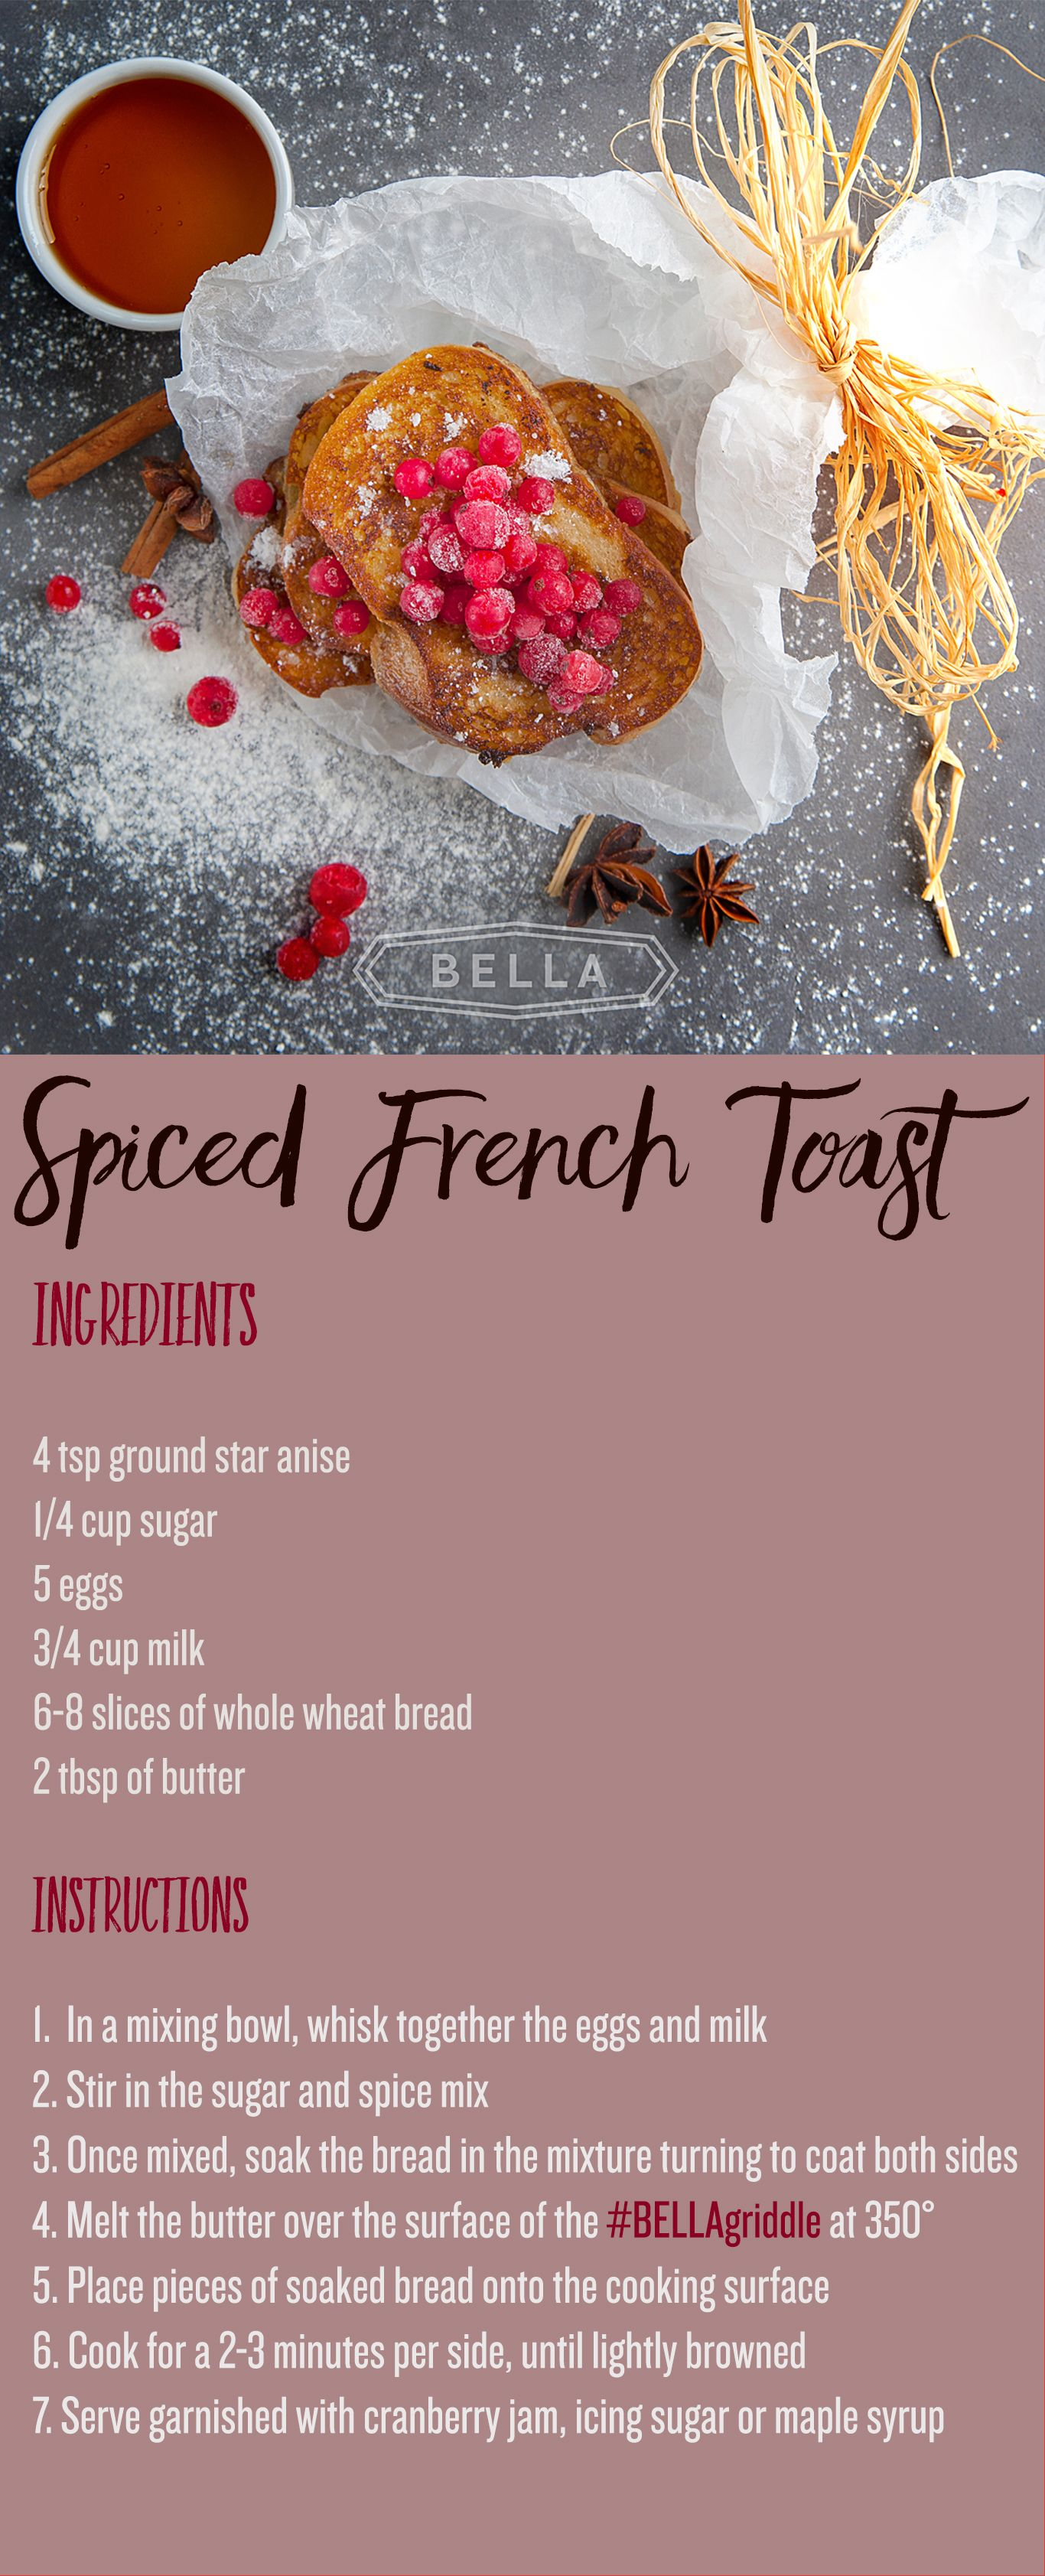 Bella Spiced French Toast With Ground Star Anise Use Your Bella Griddle To Make  Perfectly